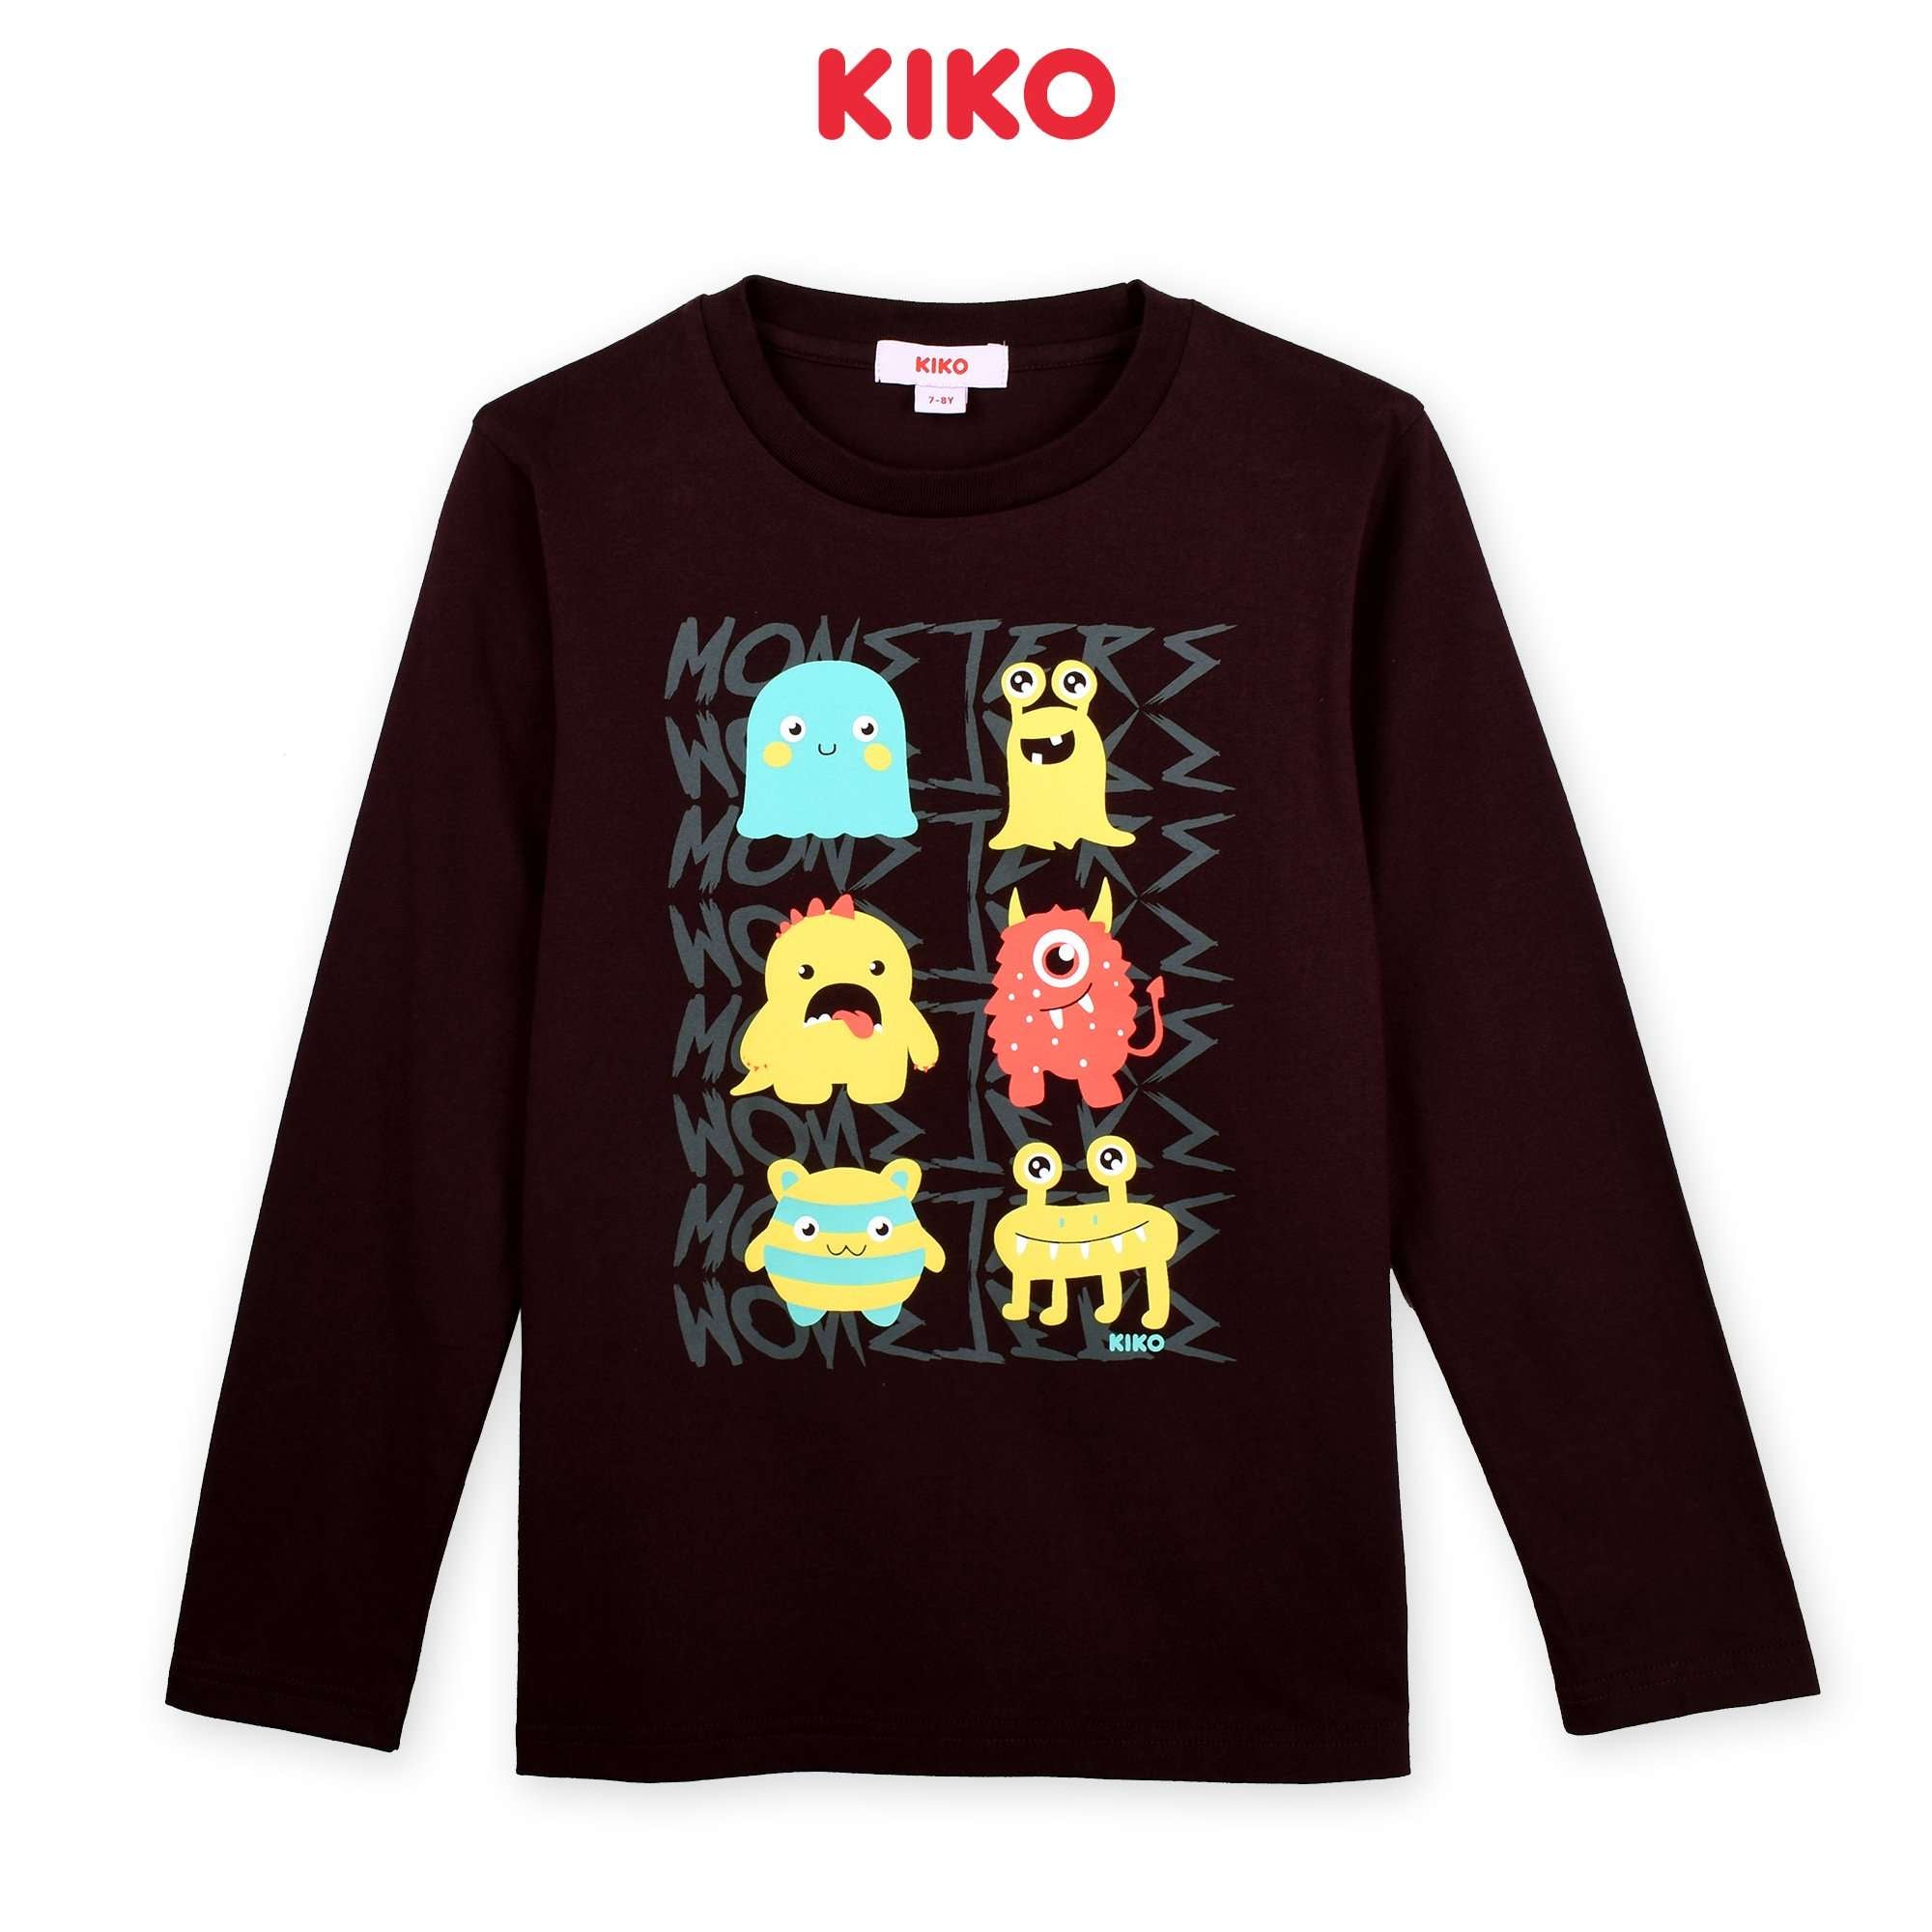 KIKO Boy Long Sleeve Tee - Brown K923103-1321-B5 : Buy KIKO online at CMG.MY